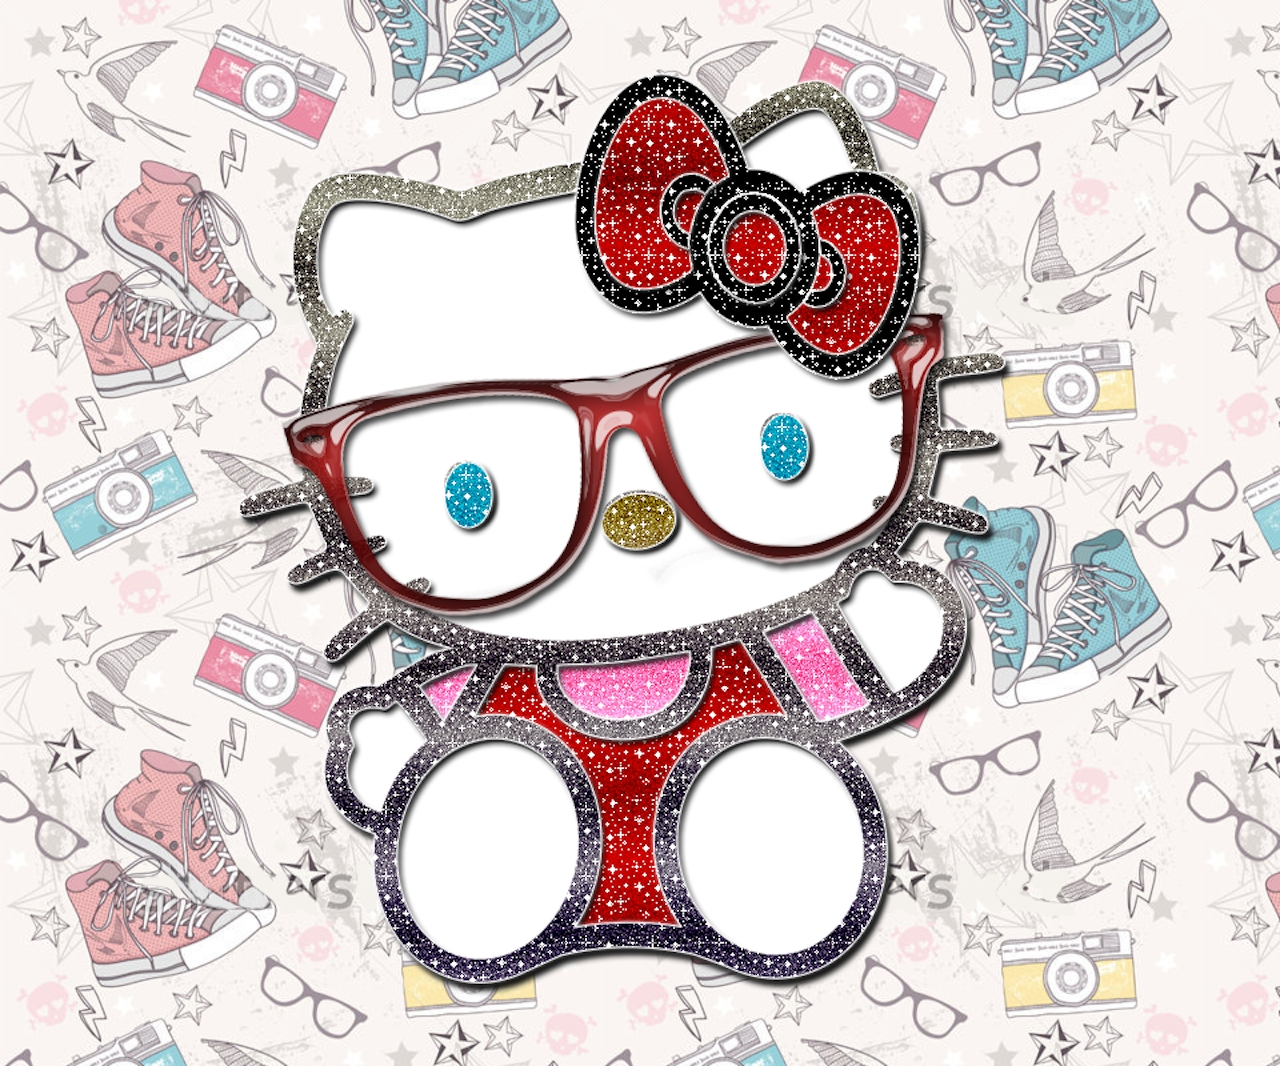 kitty nerd | hello kitty | pinterest | kitty, hello kitty and sanrio